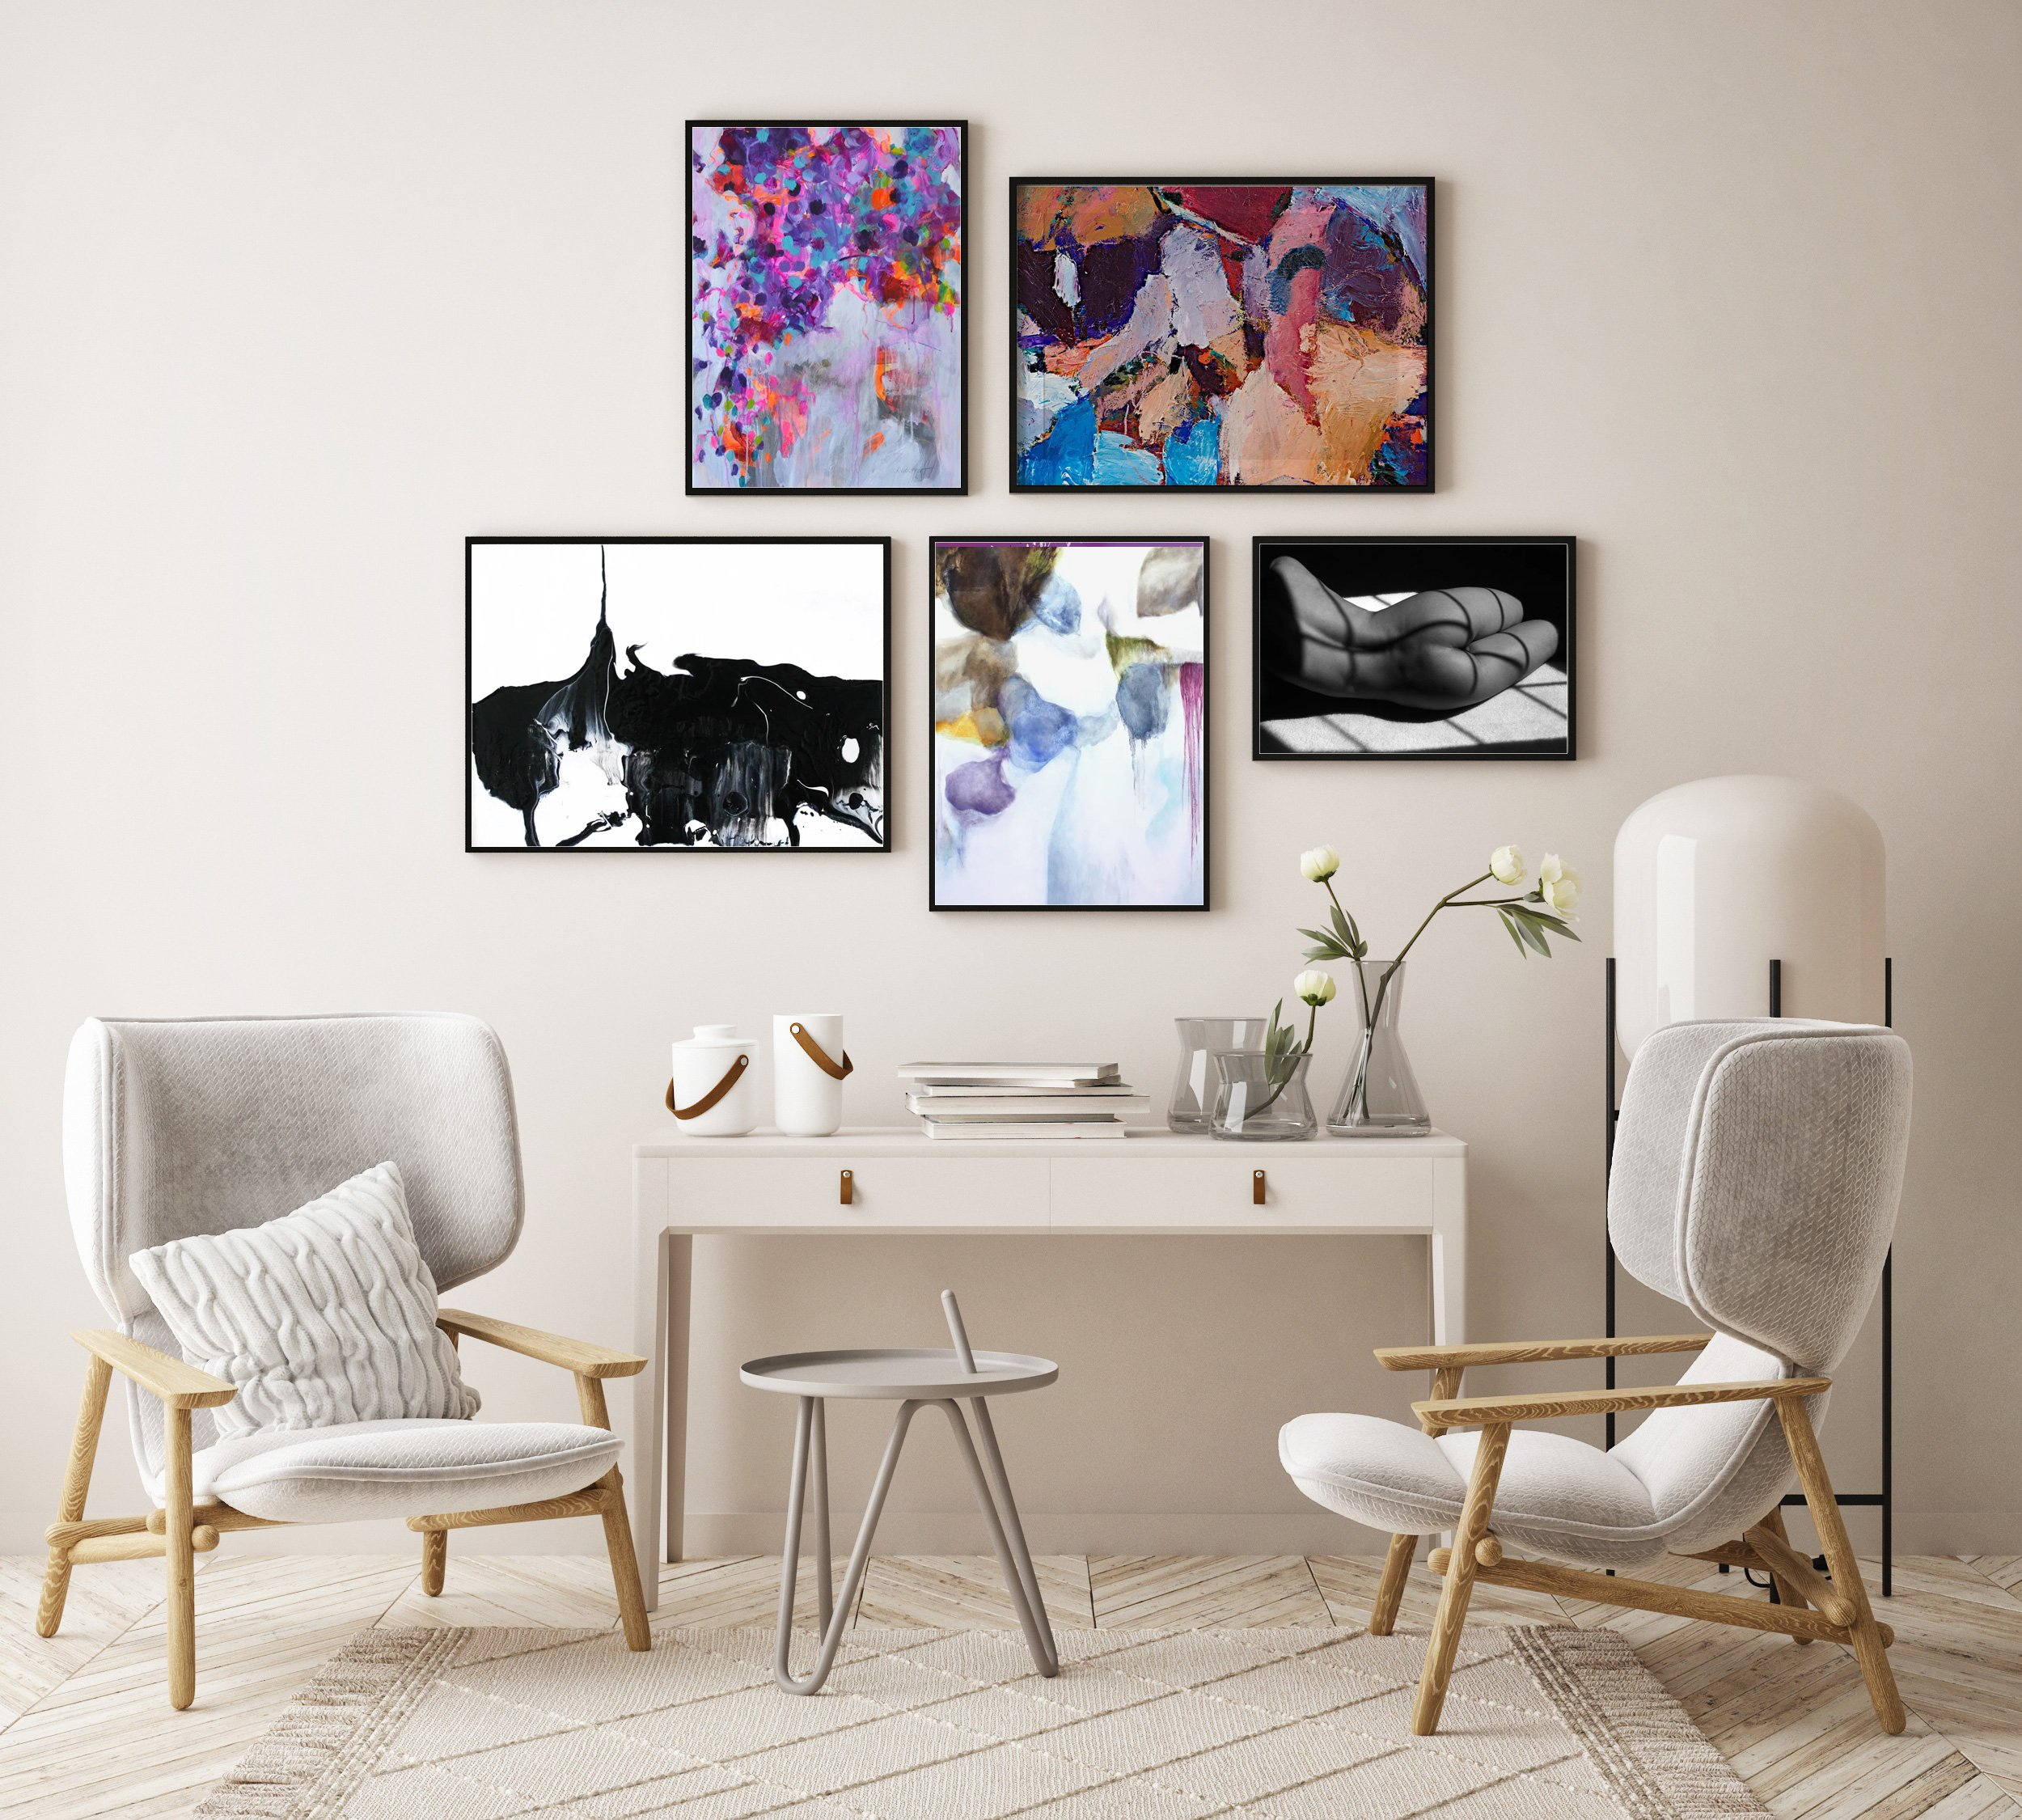 gallery wall above table and chairs with mix of artwork abstracts and photographs